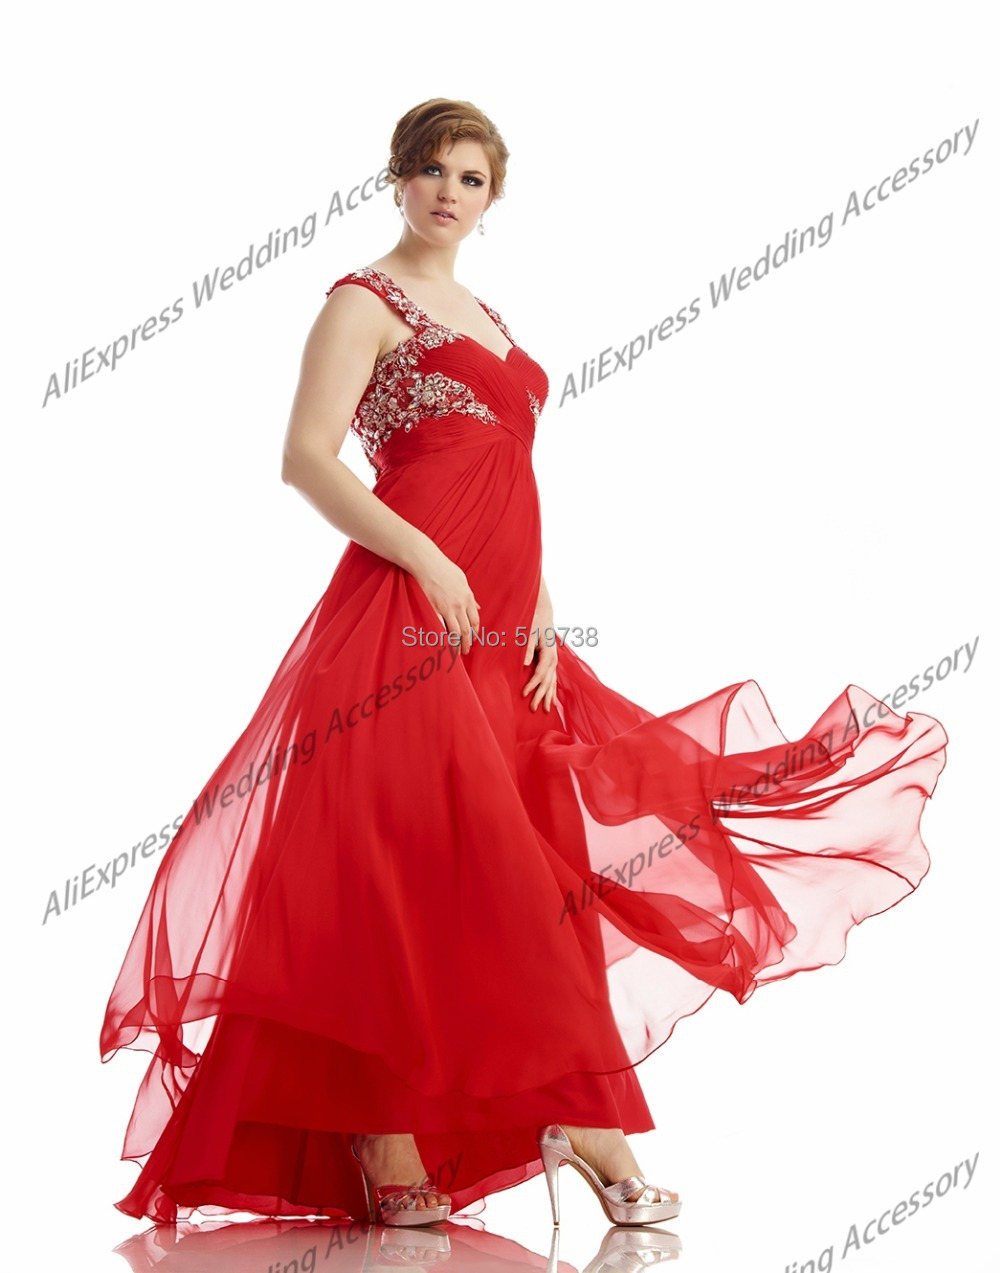 4a06216d1b5 Get Quotations · Elegant Sweetheart Chiffon Empire Waist Floor Length with  Beaded Lace Applique Plus Size Rhinestone Dress